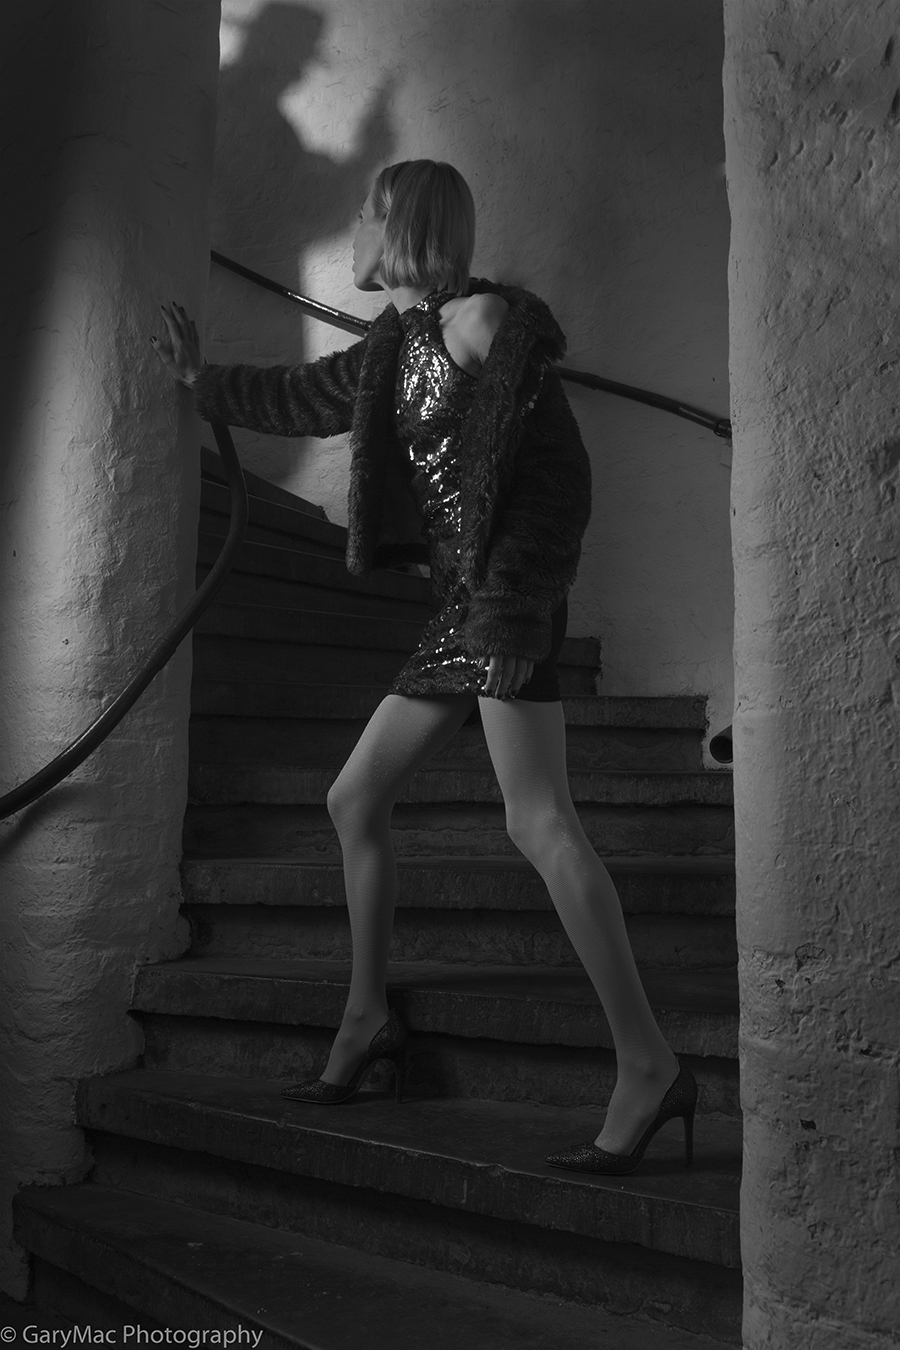 Fight or Flight ? / Photography by GaryMac Photography, Model Zara Watson, Taken at Rainbow Studio, Assisted by sperry1 / Uploaded 27th March 2017 @ 12:01 AM